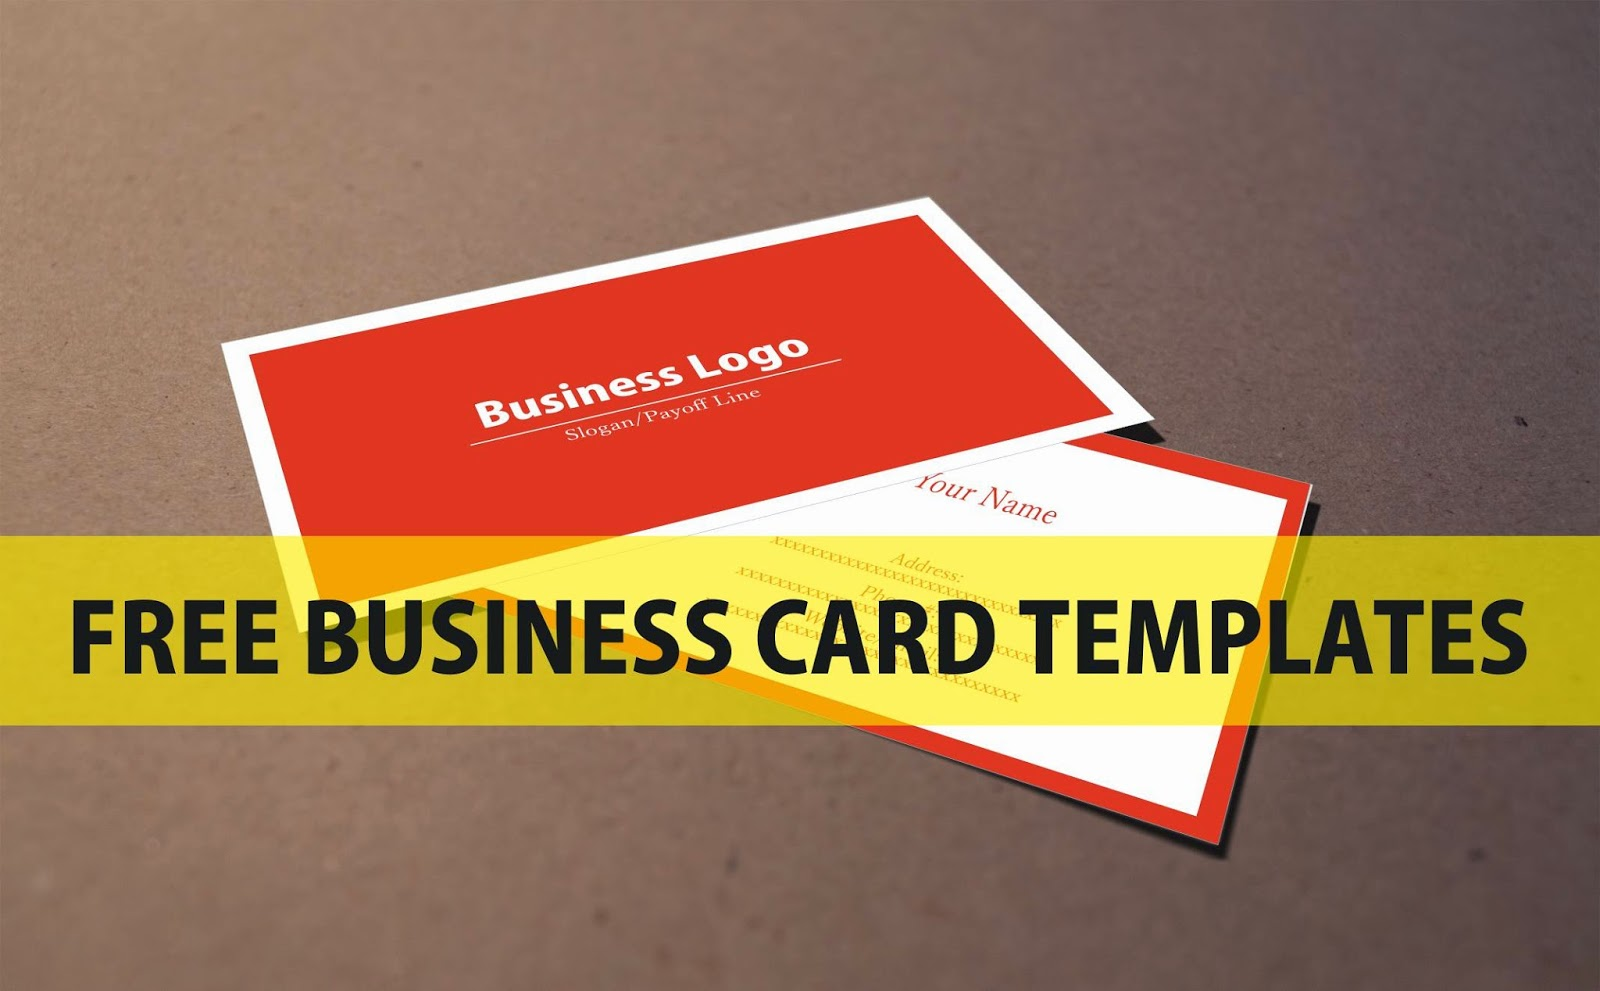 free business card template Free business card templates jpg